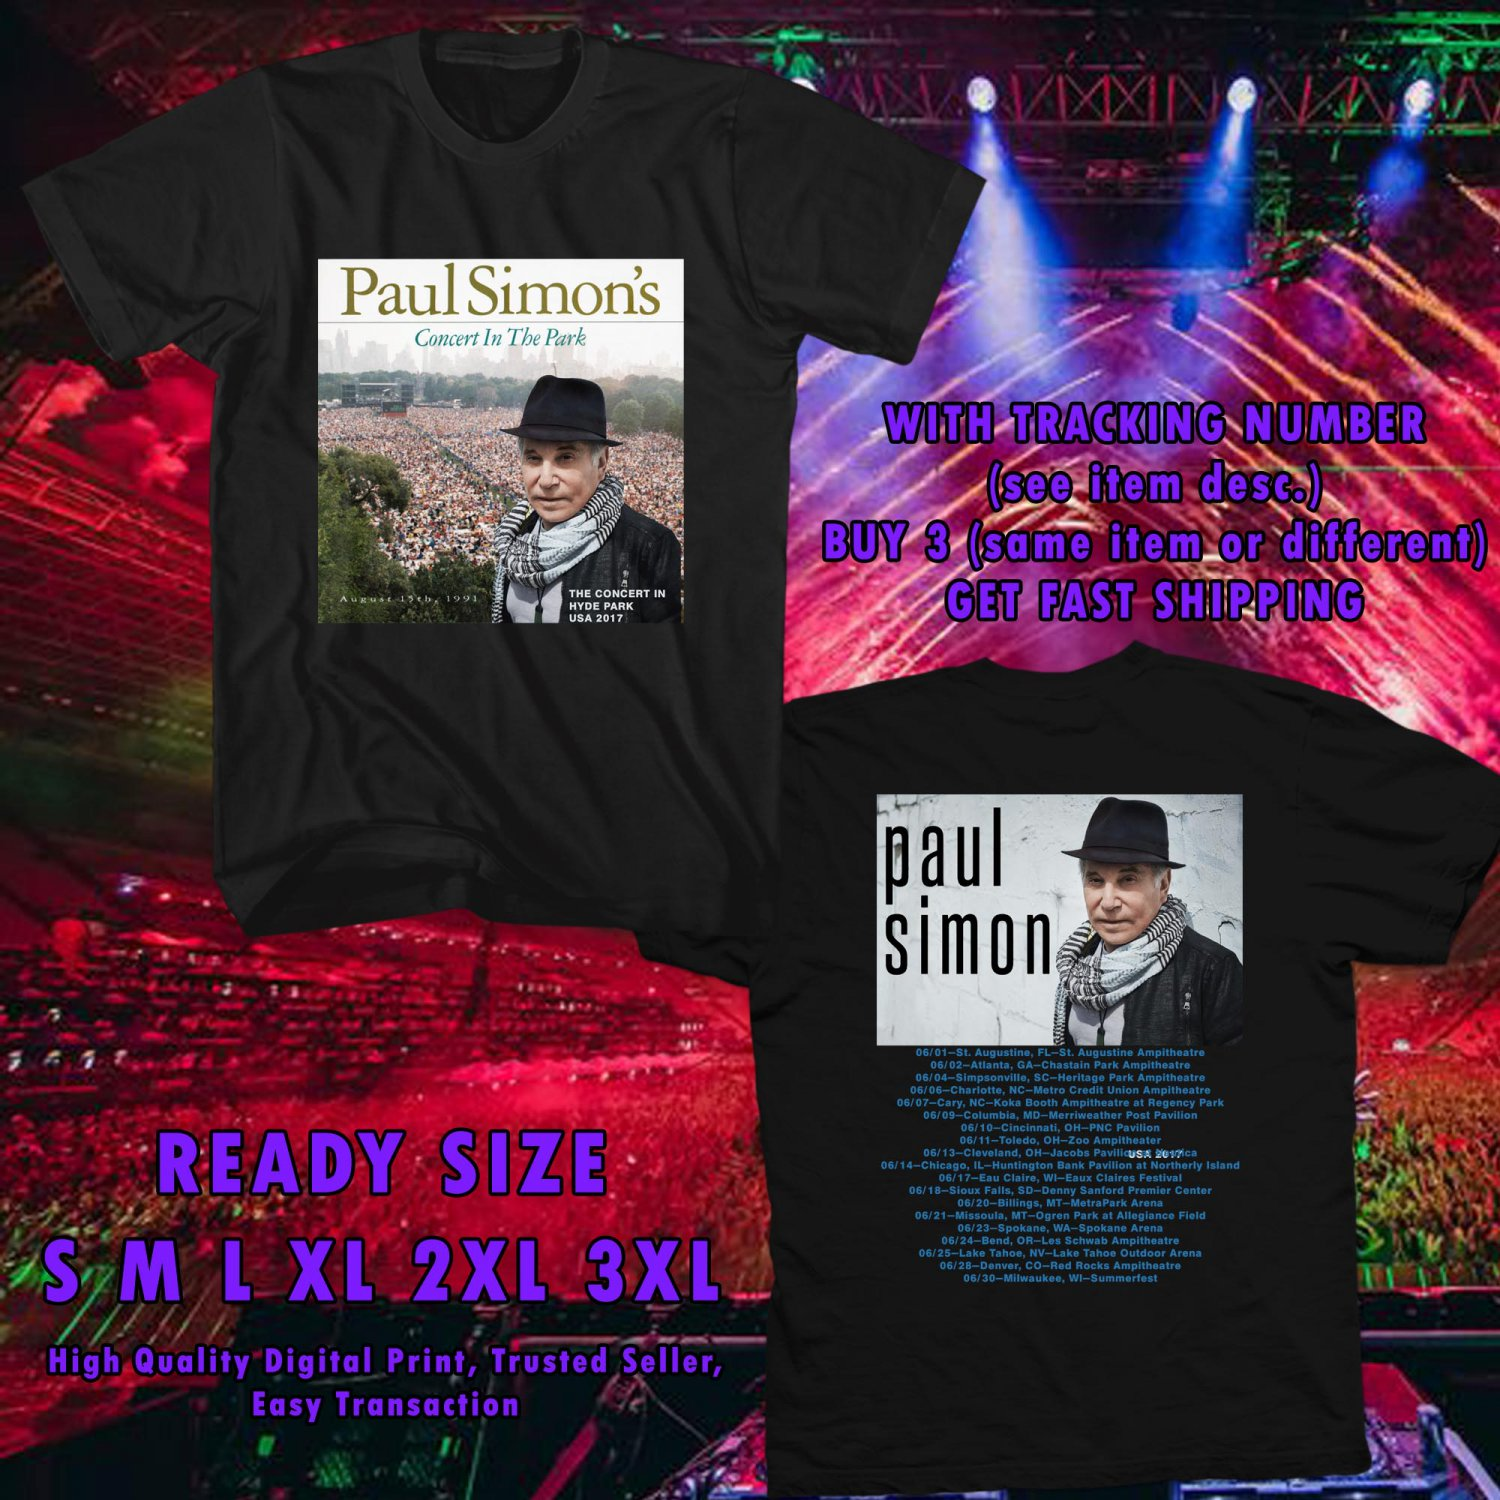 HITS PAUL SIMONS CONCERT IN HYDE PARK US 2017 BLACK TEE'S 2SIDE MAN WOMEN ASTR